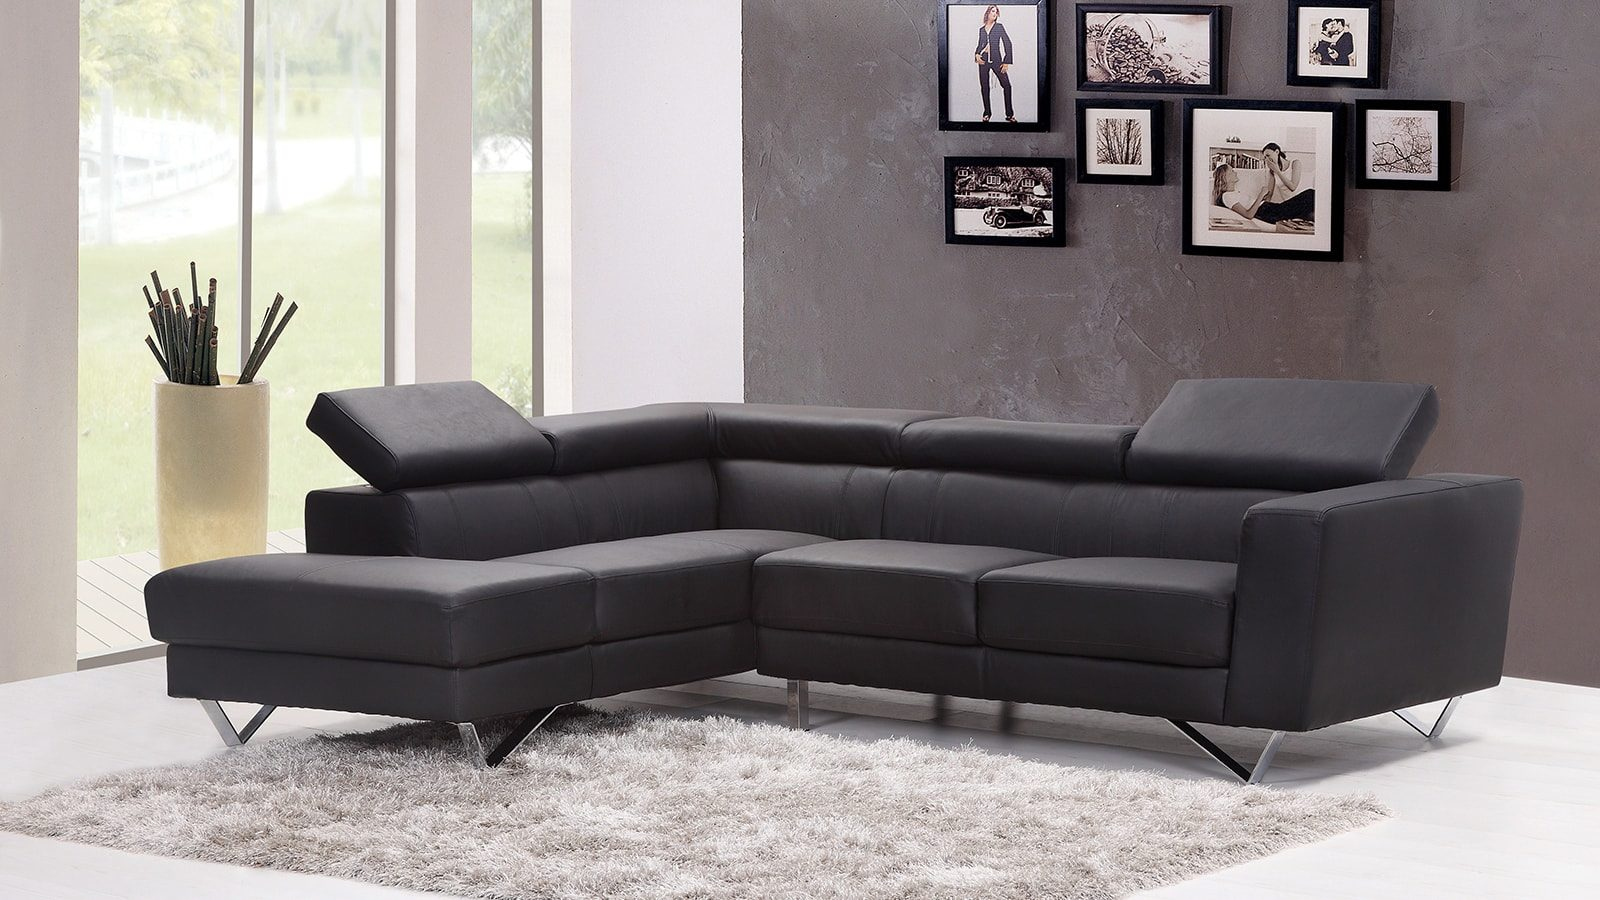 10 Modern Sofa Design Ideas For Contemporary Living Room